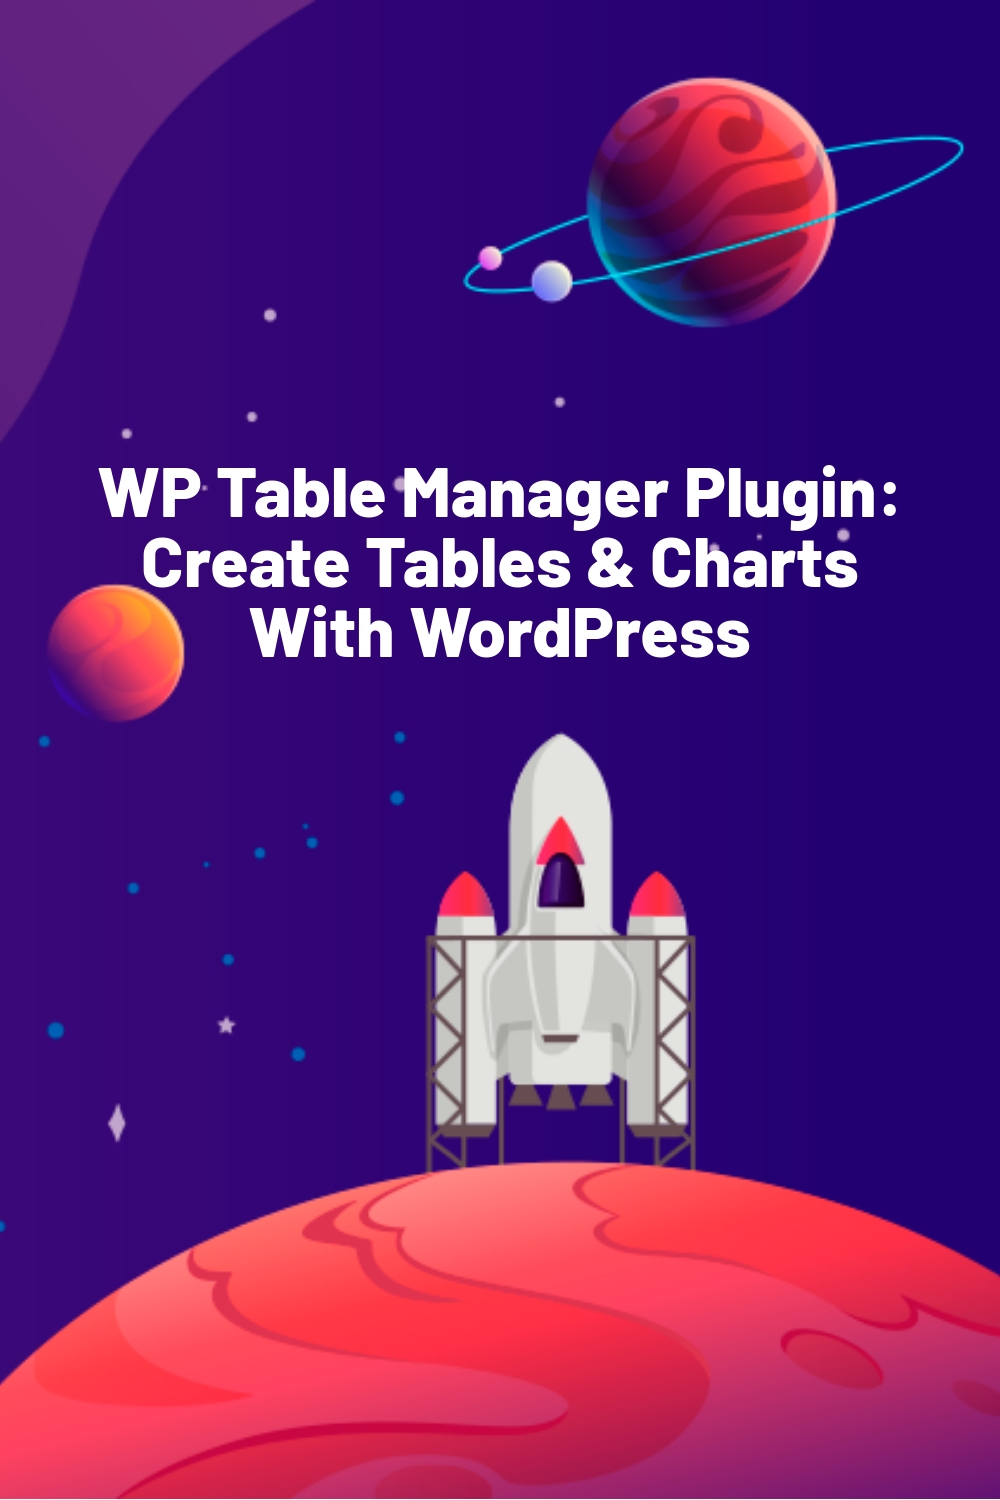 WP Table Manager Plugin: Create Tables & Charts With WordPress